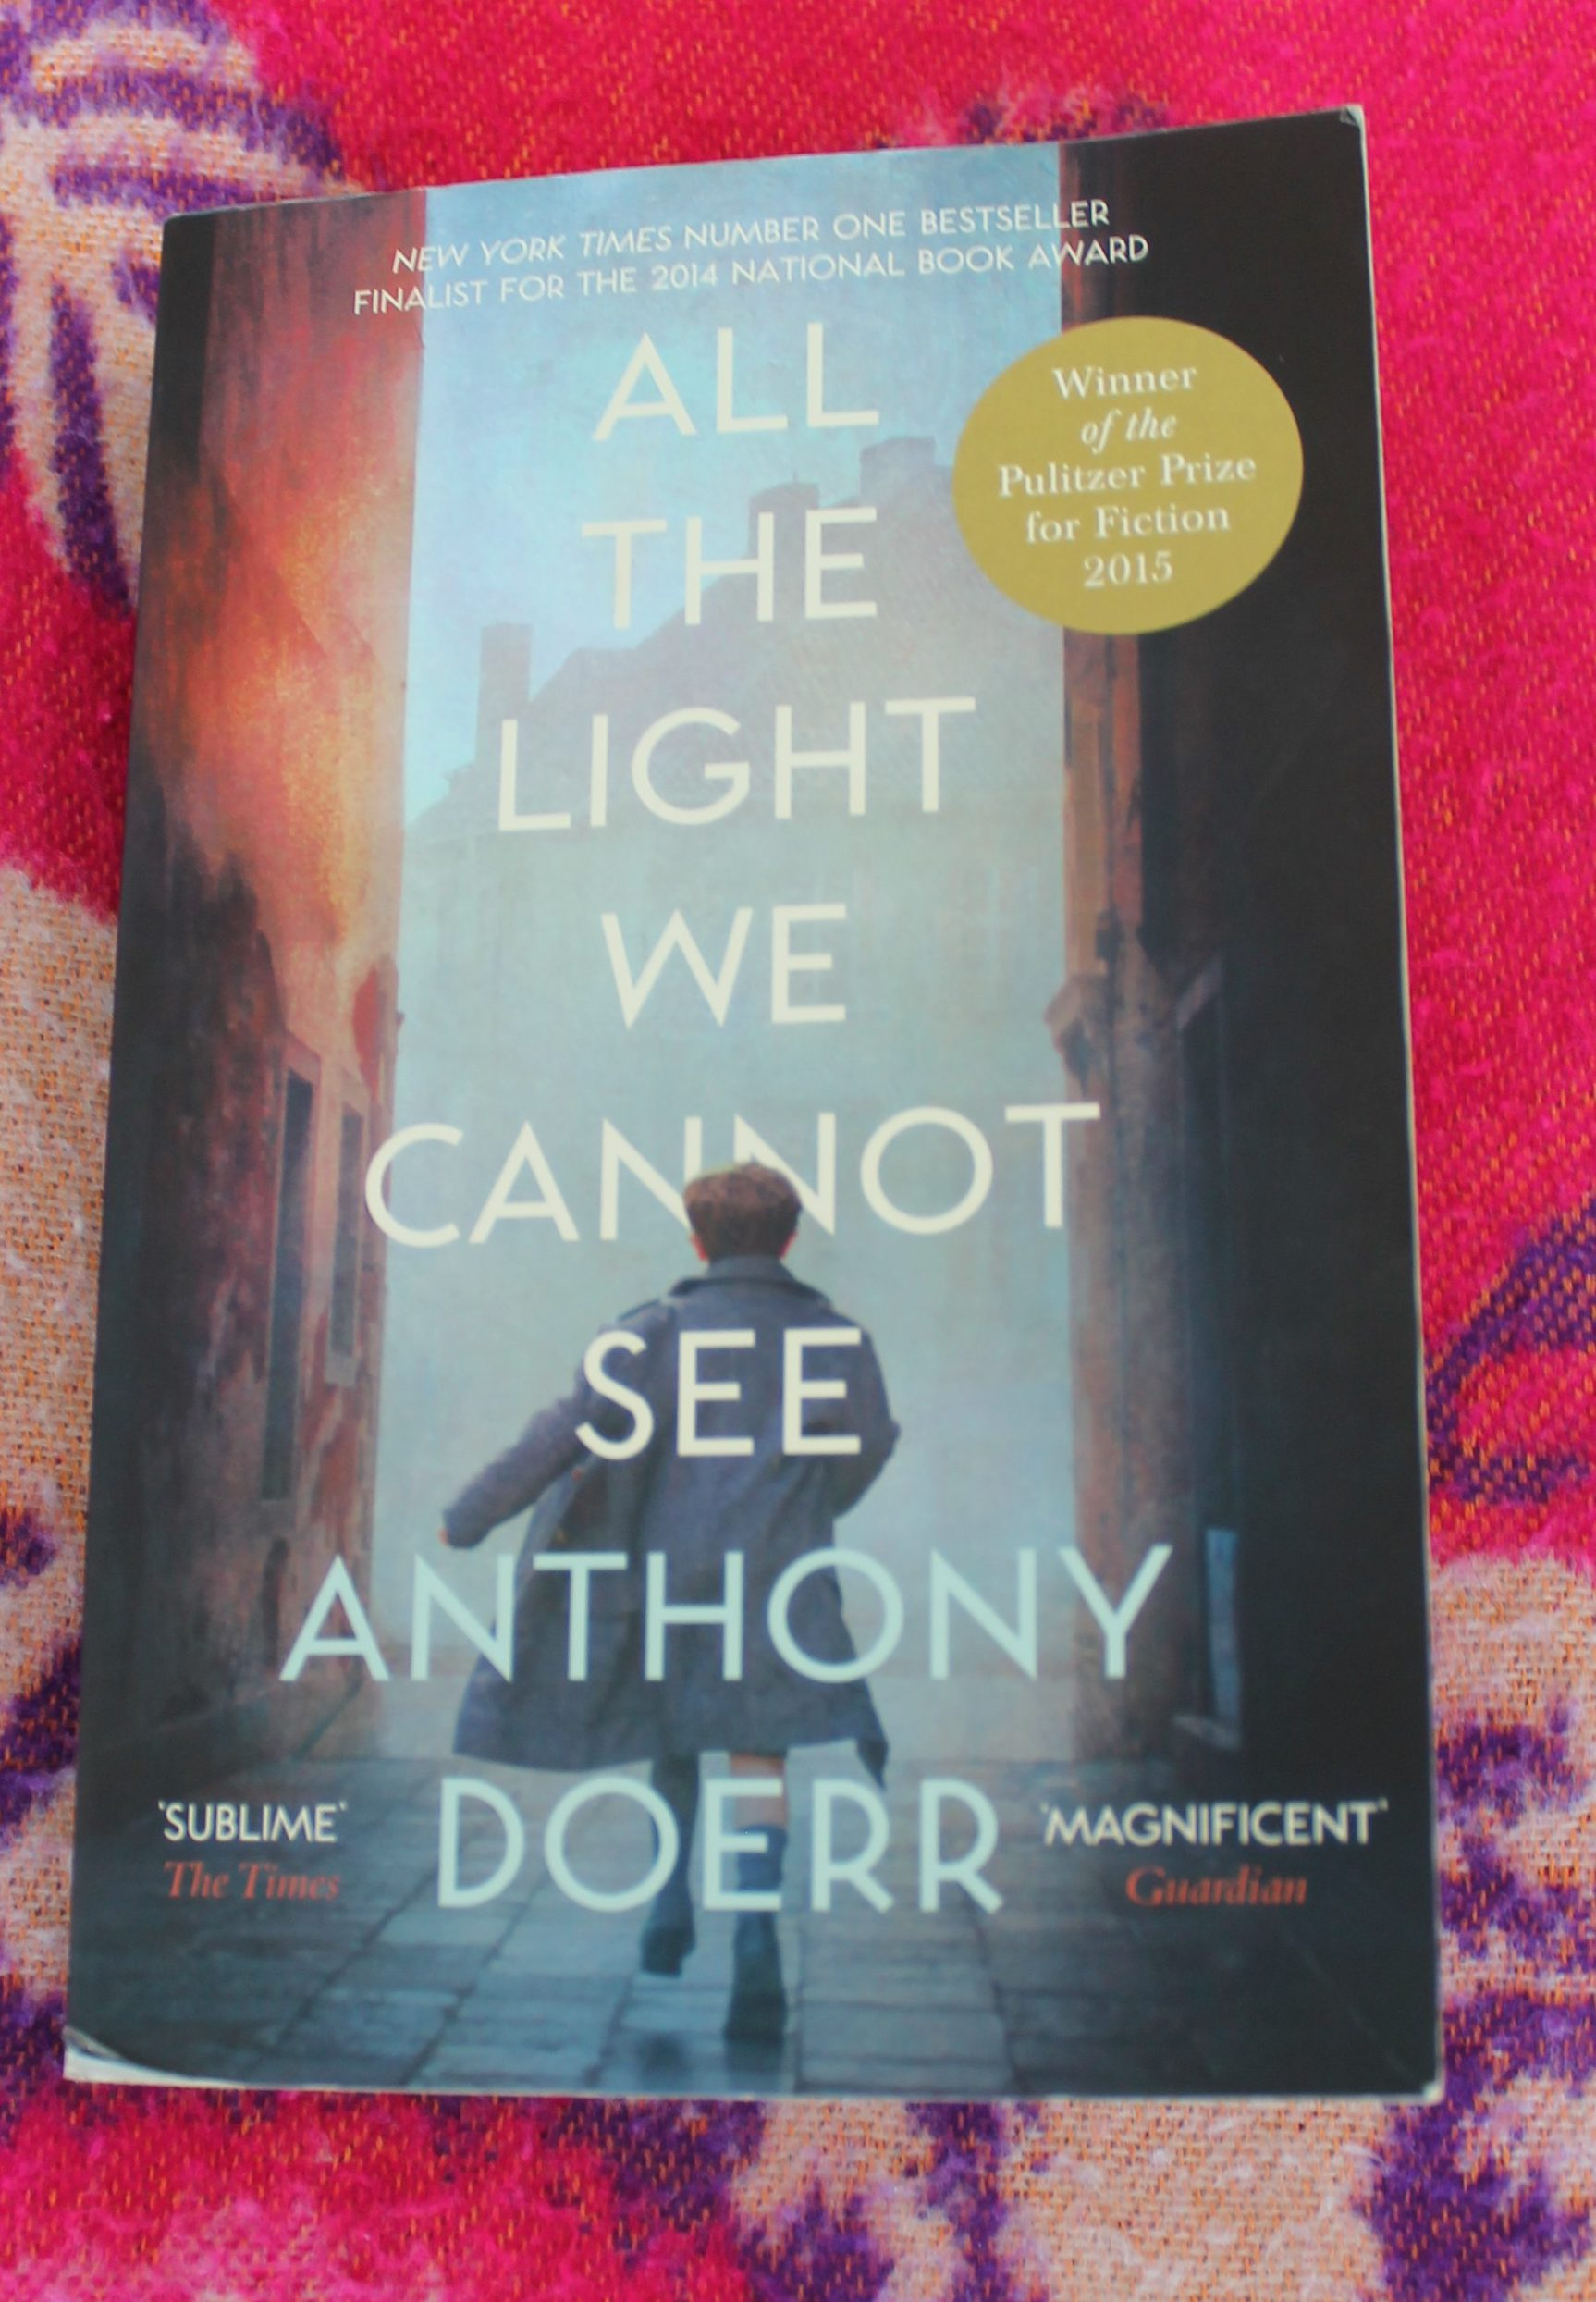 All The Light We Cannot See Anthony Doerr Always Judge A Book